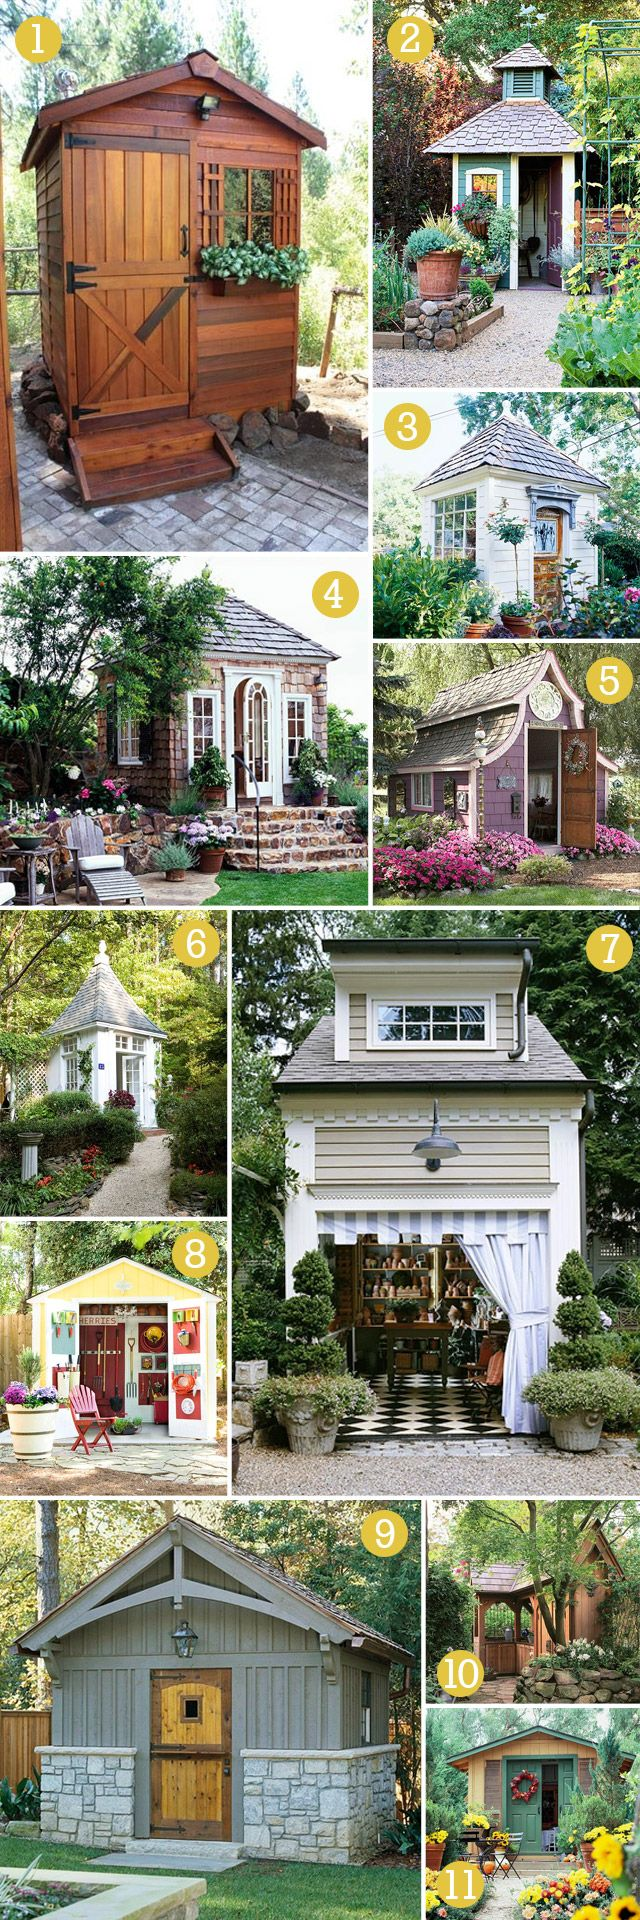 The best images about where the green grass grows on pinterest